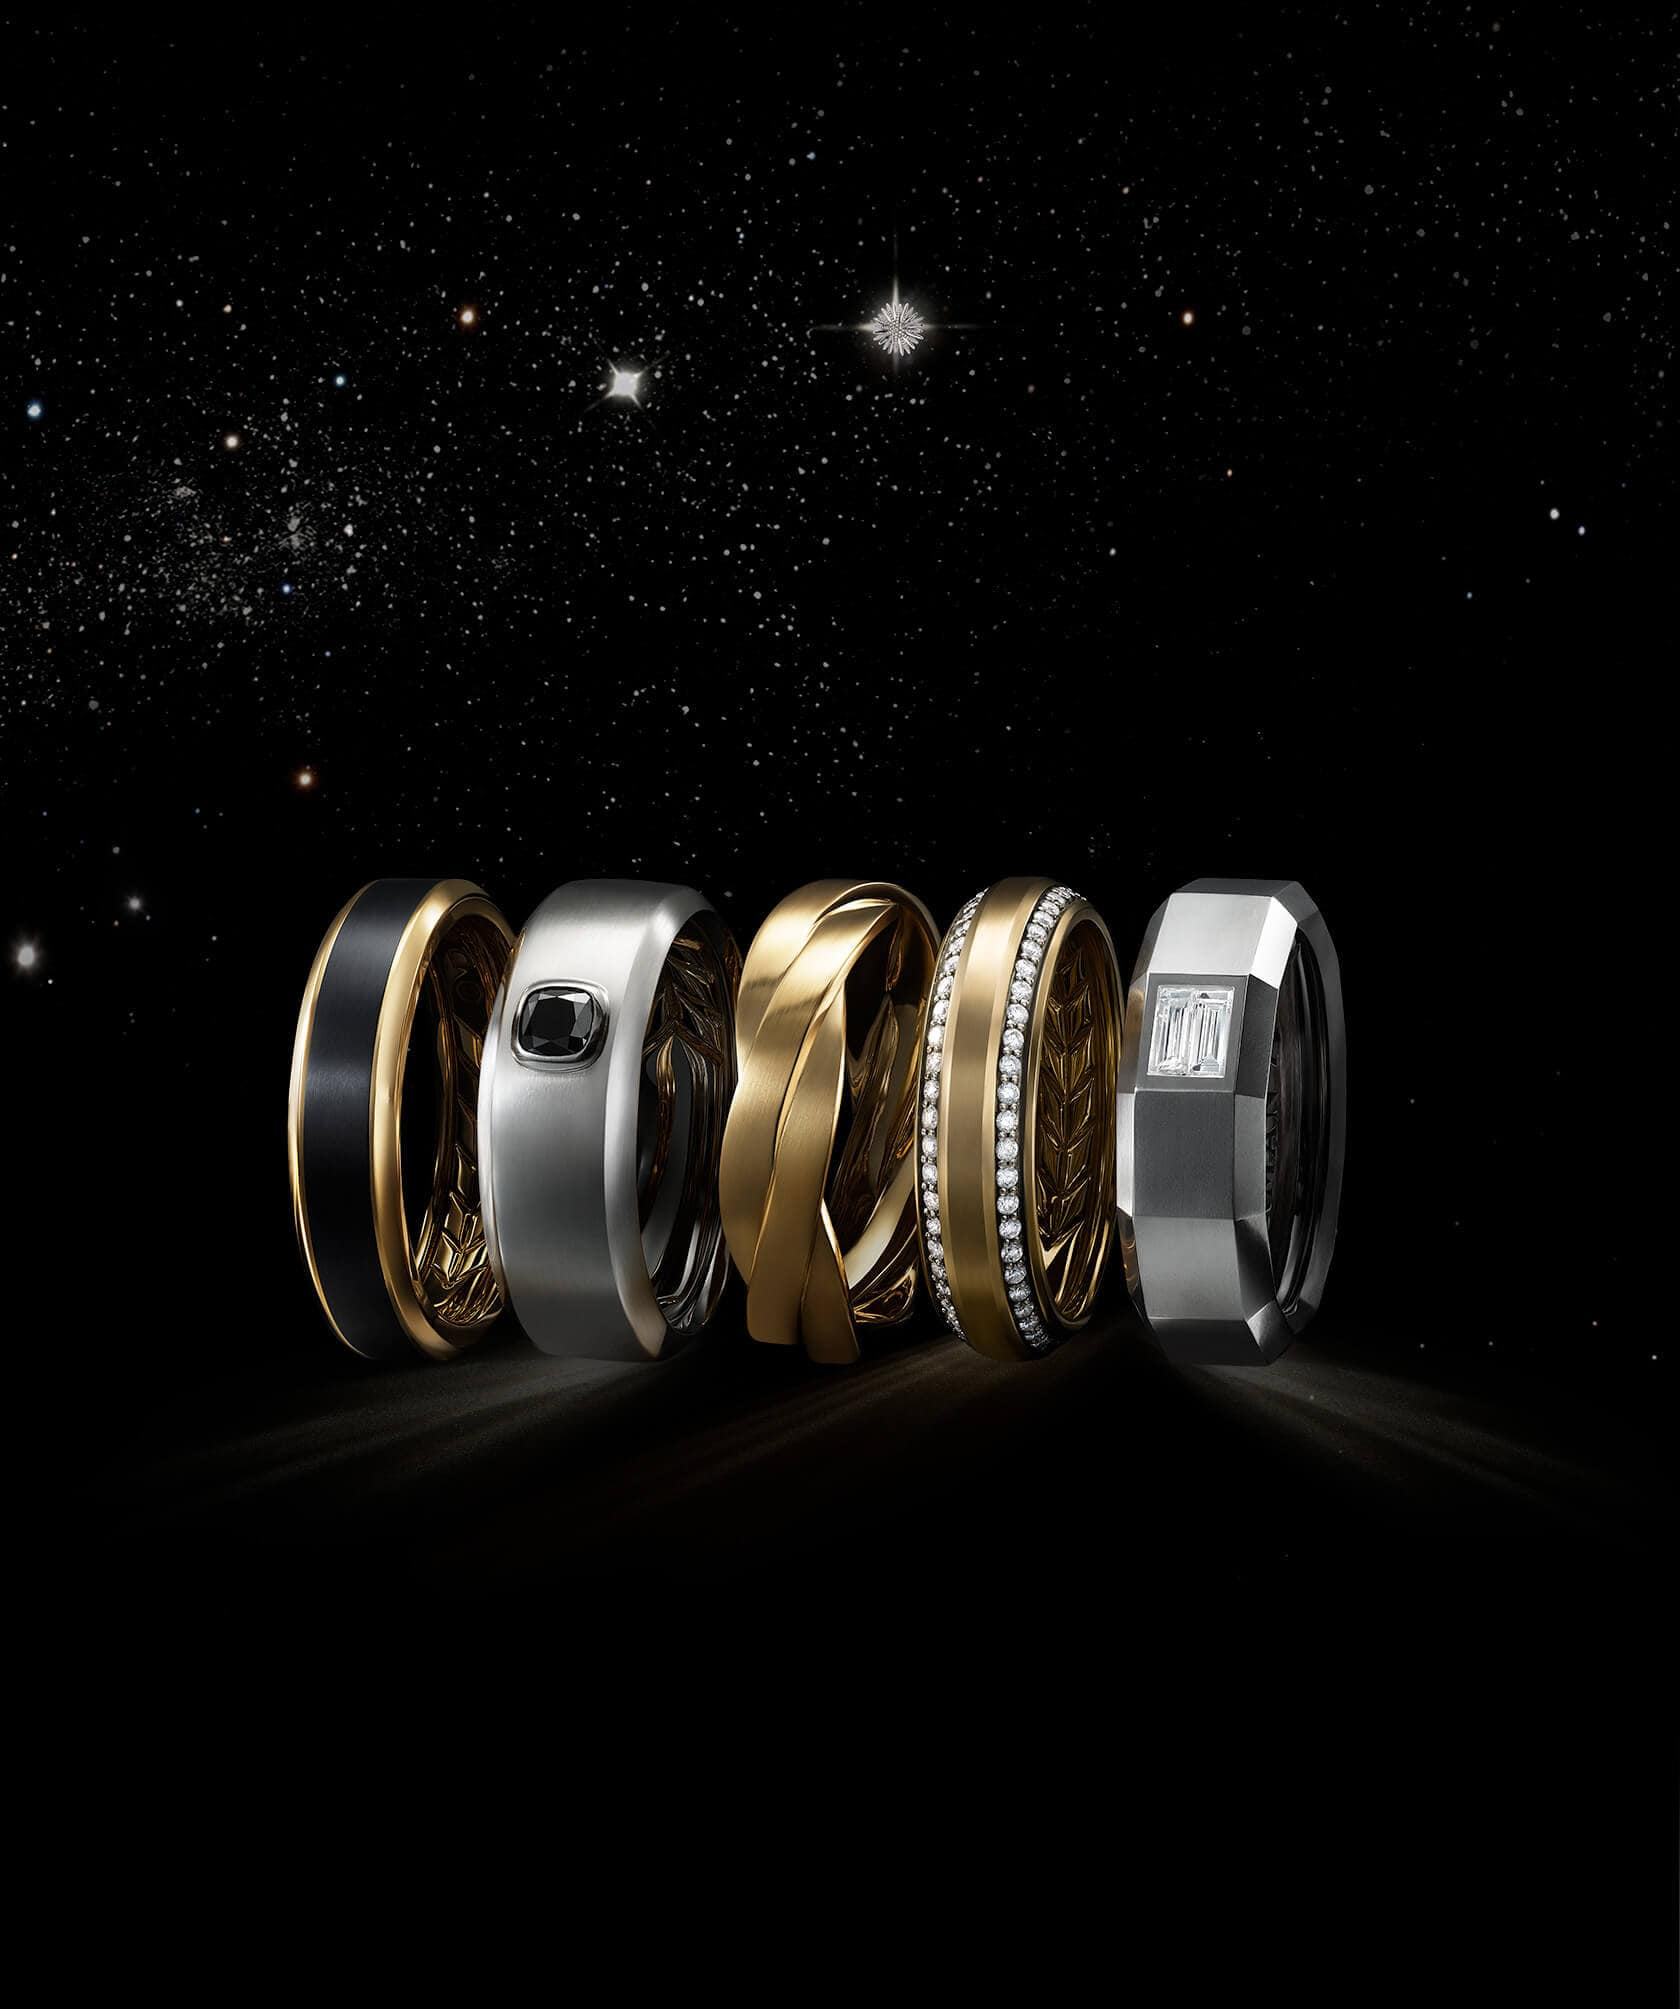 A color photo shows a horizontal stack of five David Yurman men's bands floating in front of a starry night sky. Three of the men's rings are crafted from 18K yellow gold with or without pavé white diamonds or black titanium. Two of the rings are crafted from 18K white gold with or without black or white diamonds.